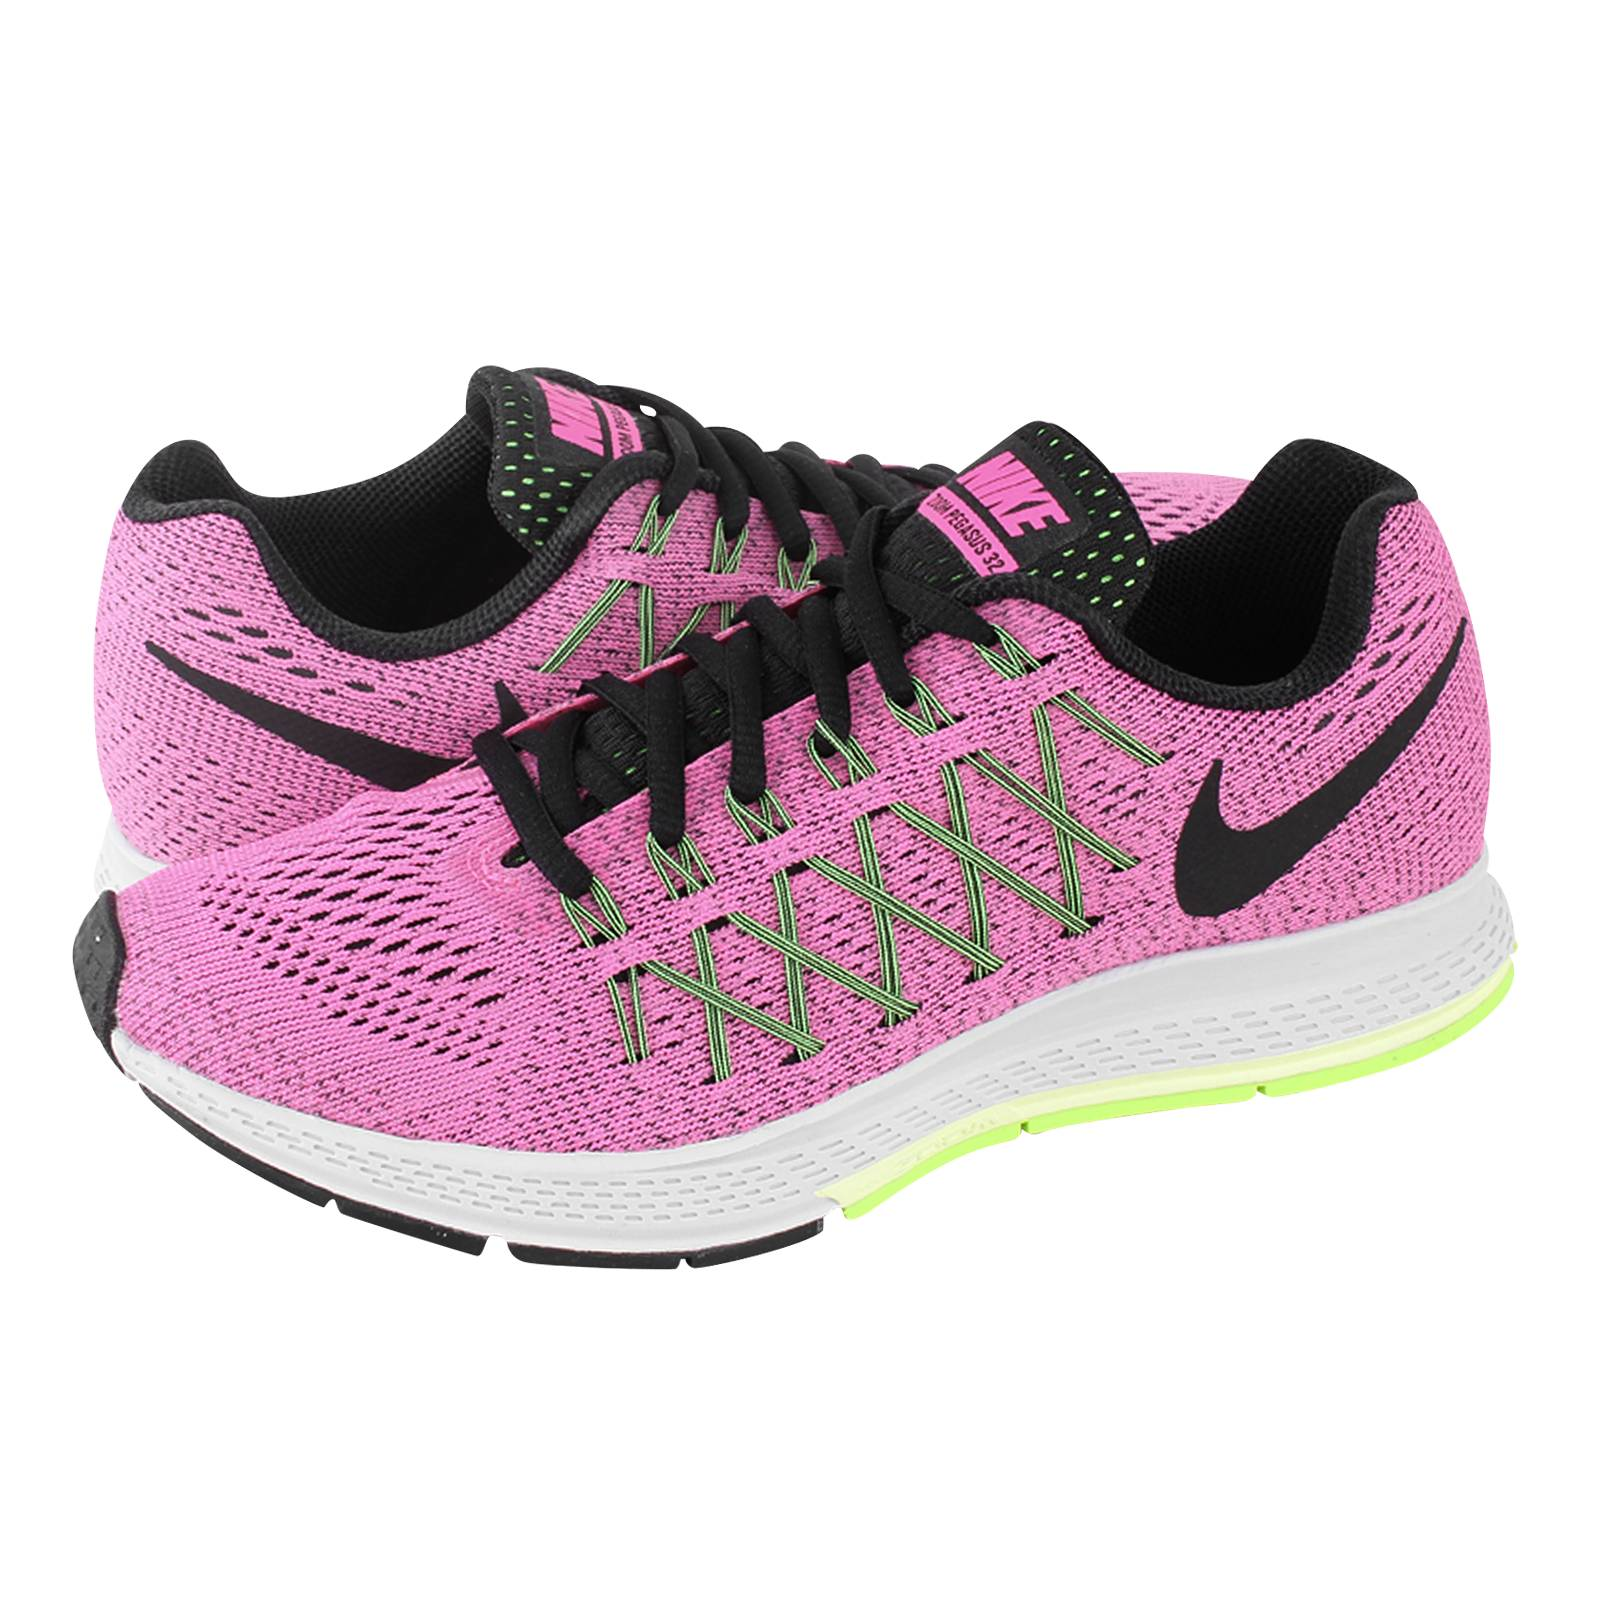 premium selection 502d7 9a122 Nike Air Zoom Pegasus 32 athletic shoes